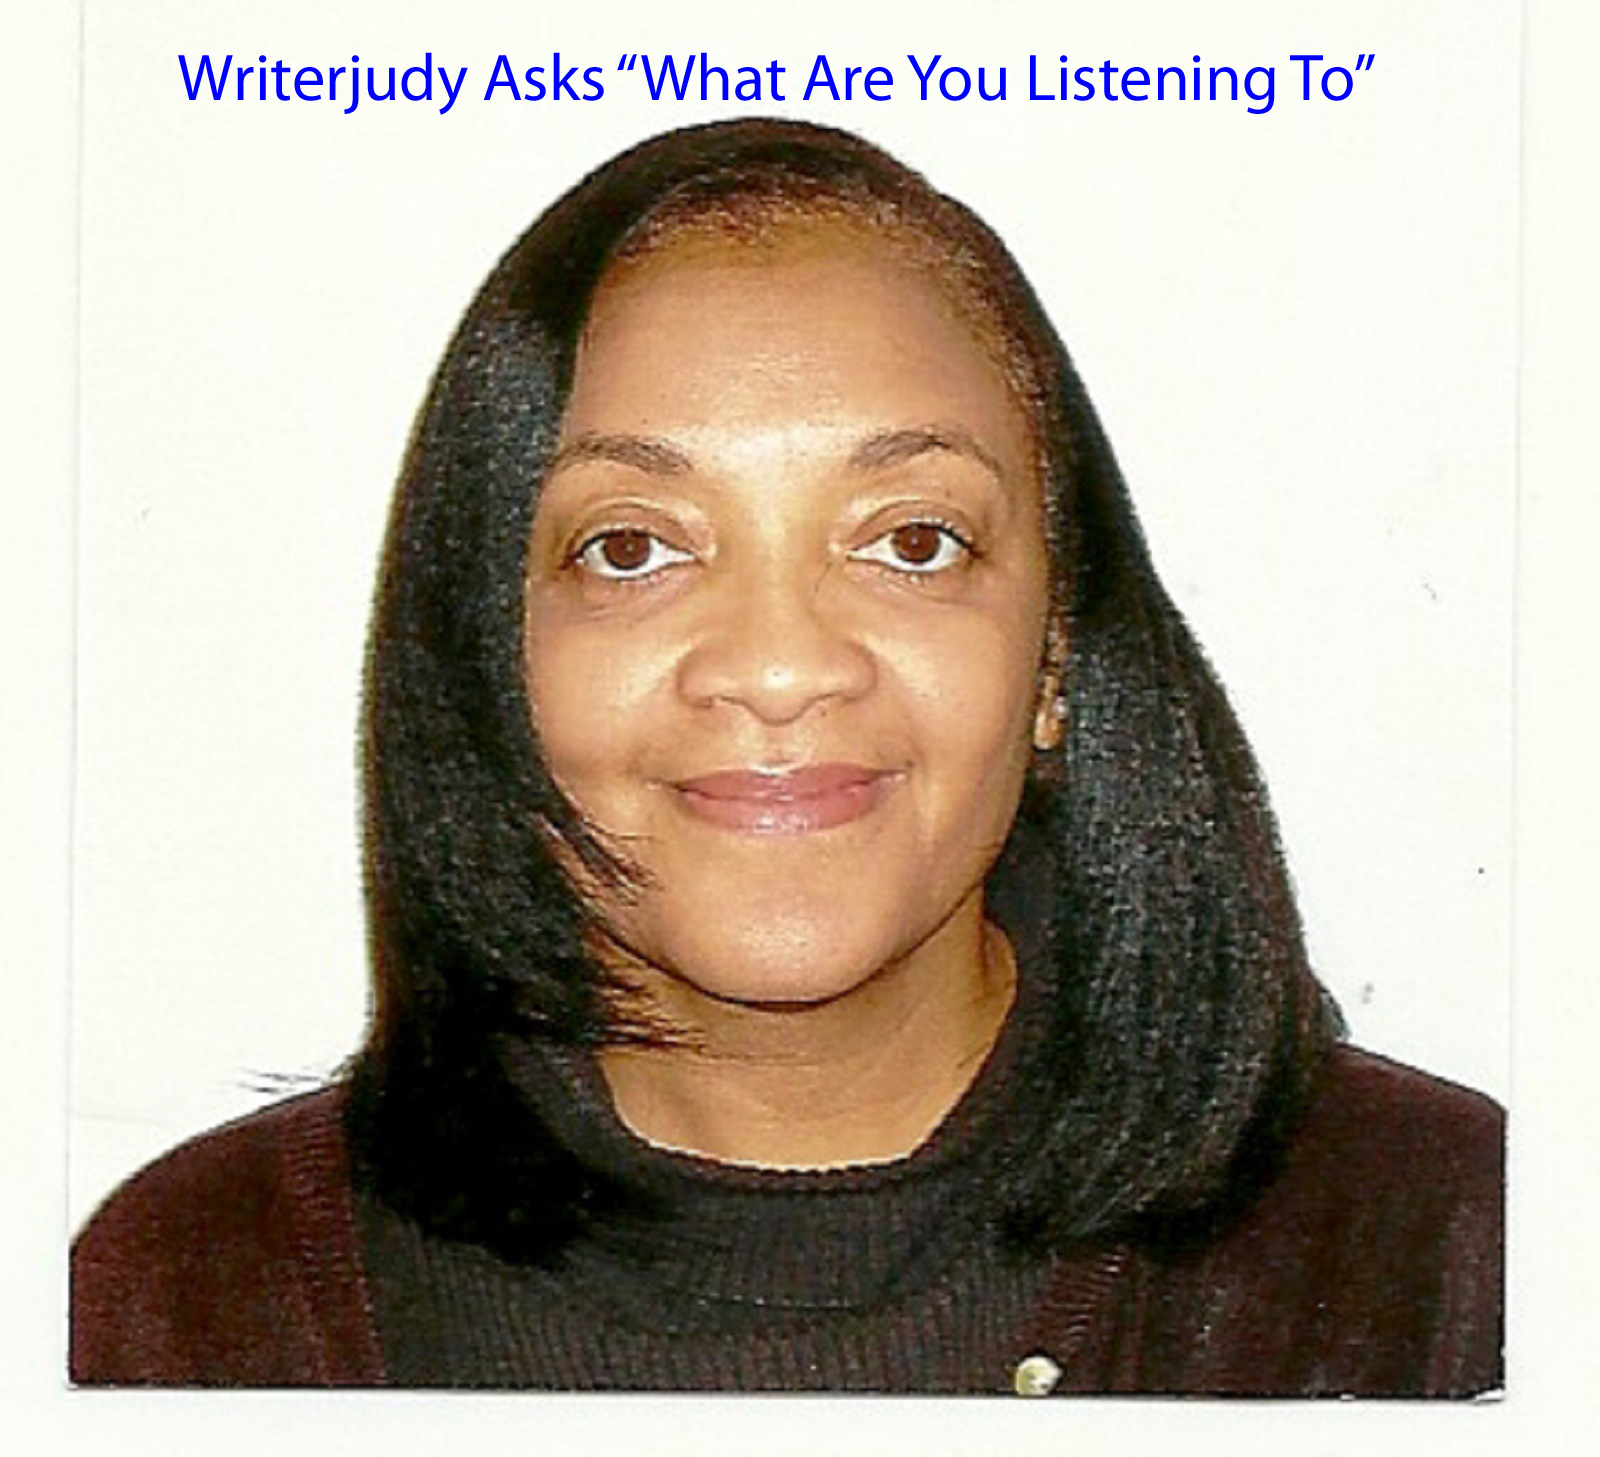 Podcast, music, Writerjudy, writerjudys podcast